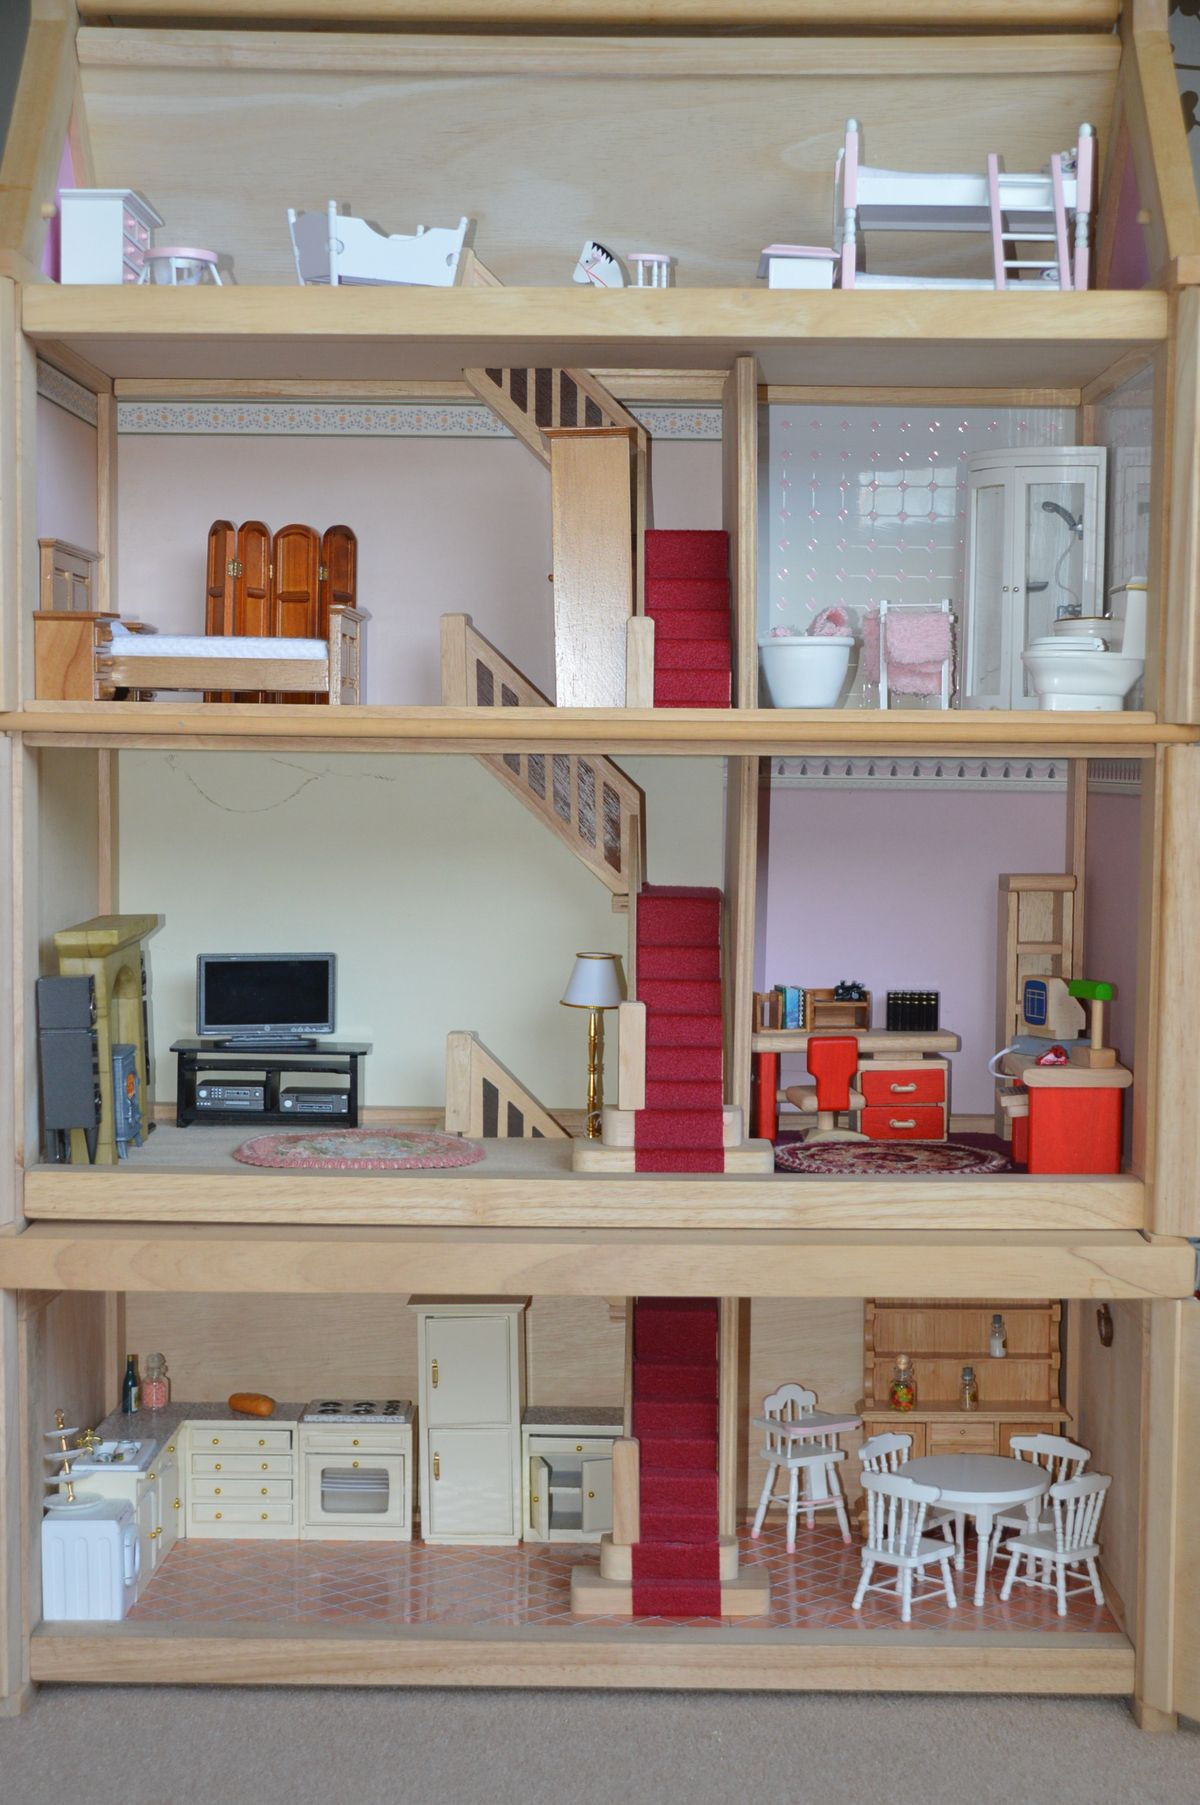 Plan toys Doll House Awesome Plan toys Victorian Dolls House In Wyre for £99 00 for